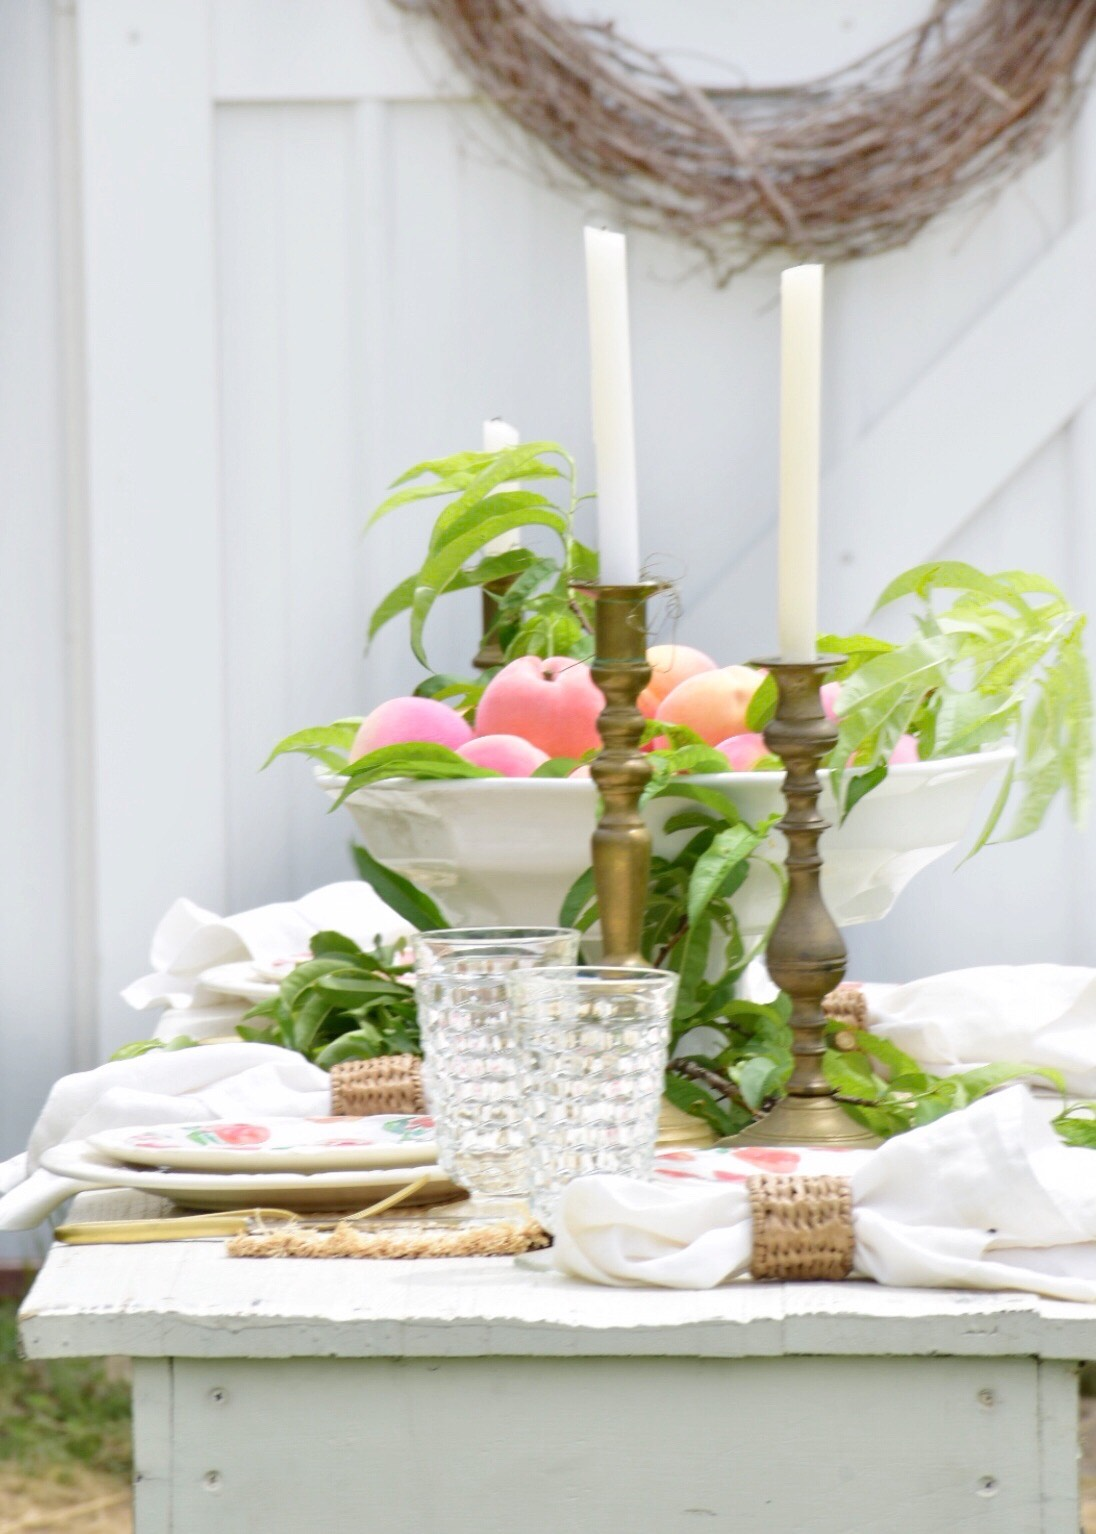 peach themed tablescape set at a long white farmtable. White dinner plates are topped with a peach pattern melamine plate and a white linen napkin with a woven napkin ring sits beside each place setting. The center piece is a large pedestal white bowl filled with fresh peaches and peach tree leaves, and 3 vintage brass candlesticks with white tapers surround the centerpiece.